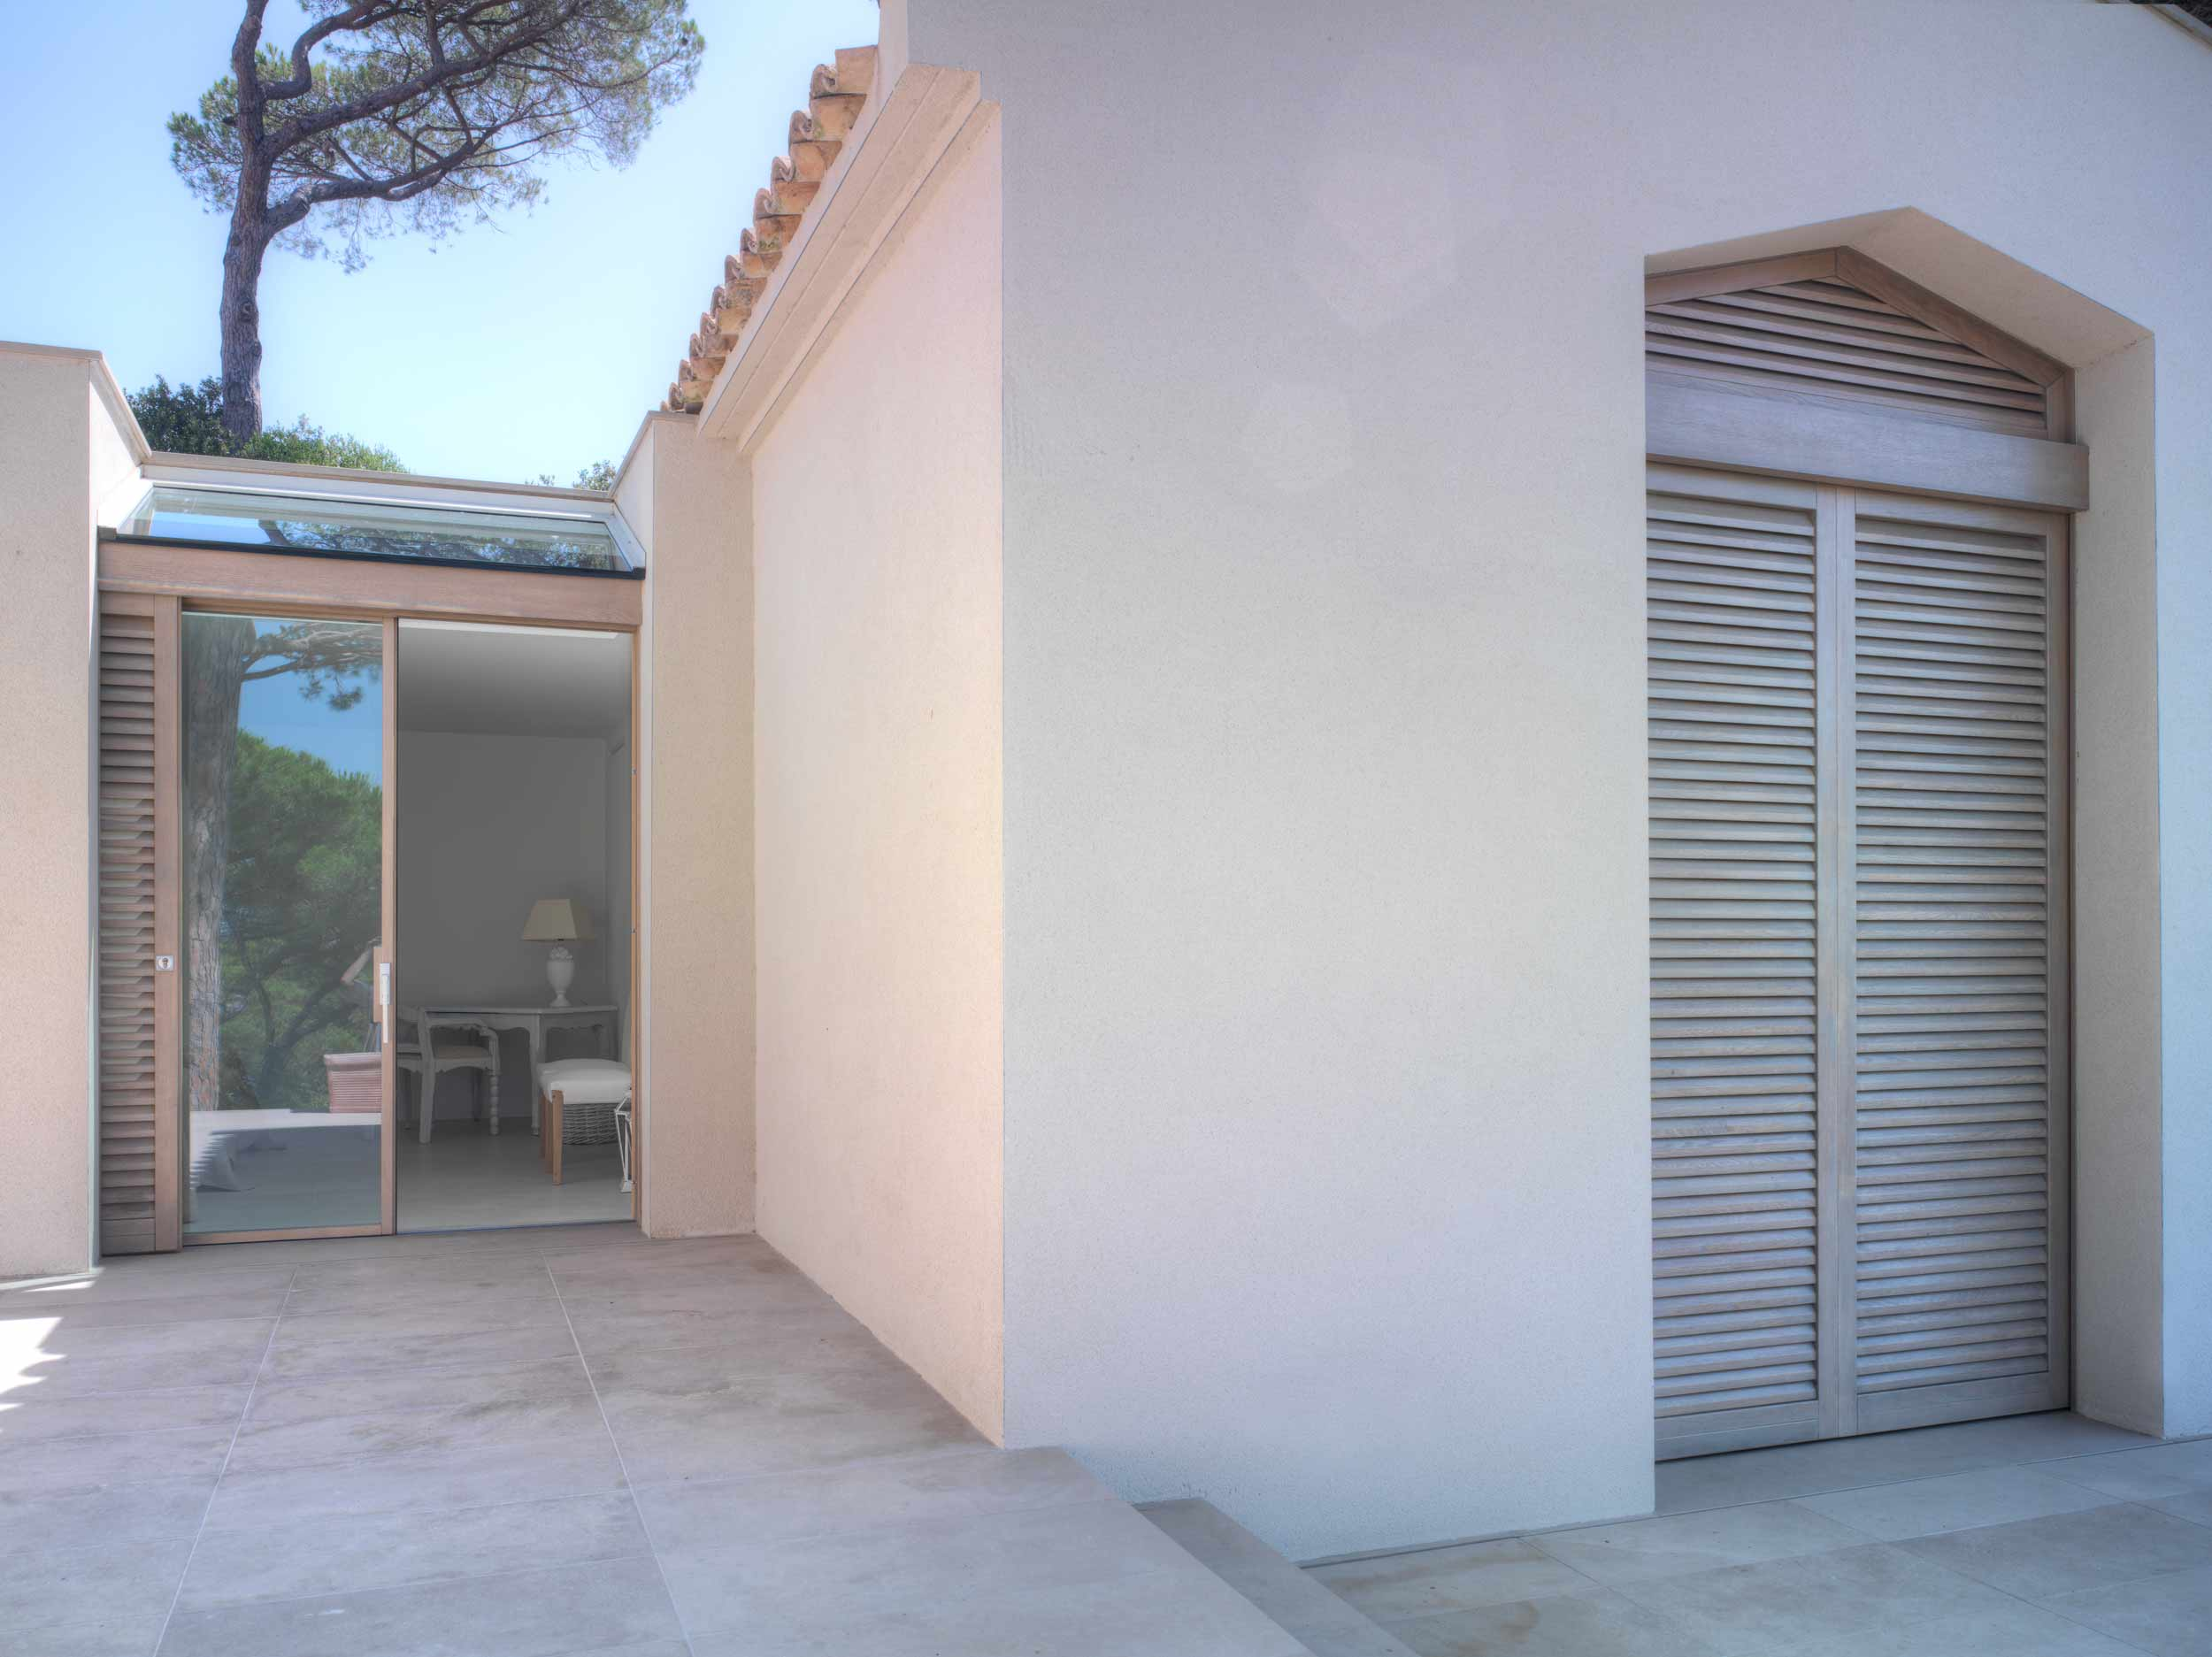 View of the facade of the villa with wooden shutters